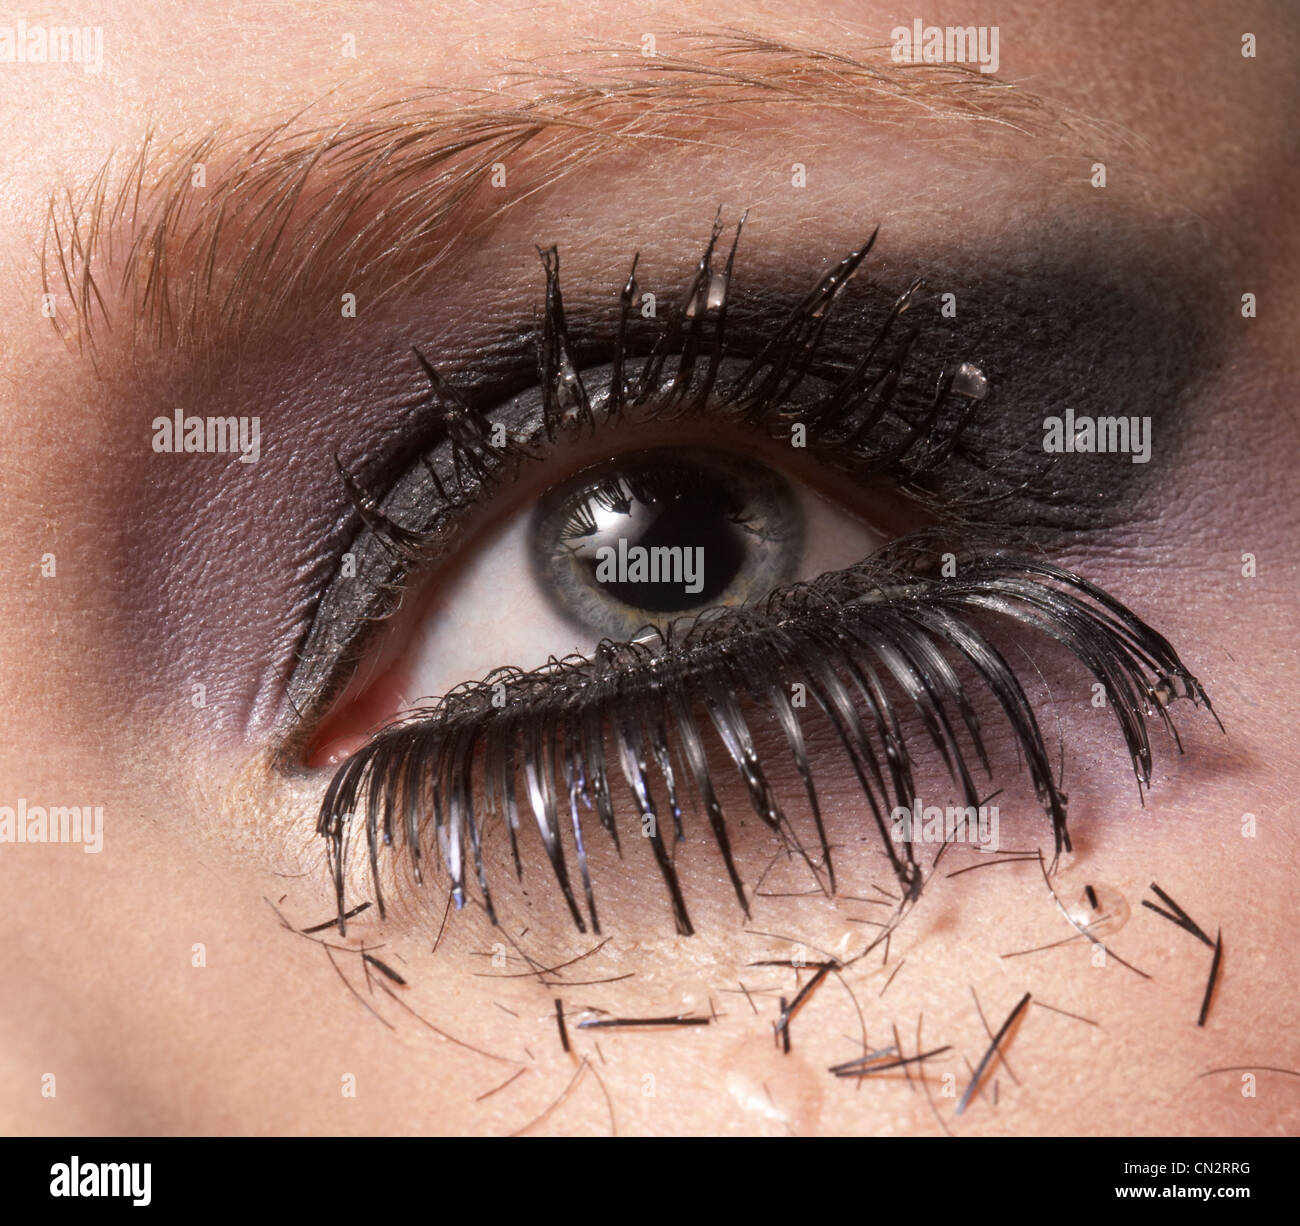 Female eye with pieces of eyelash and tears Stock Photo, Royalty ...